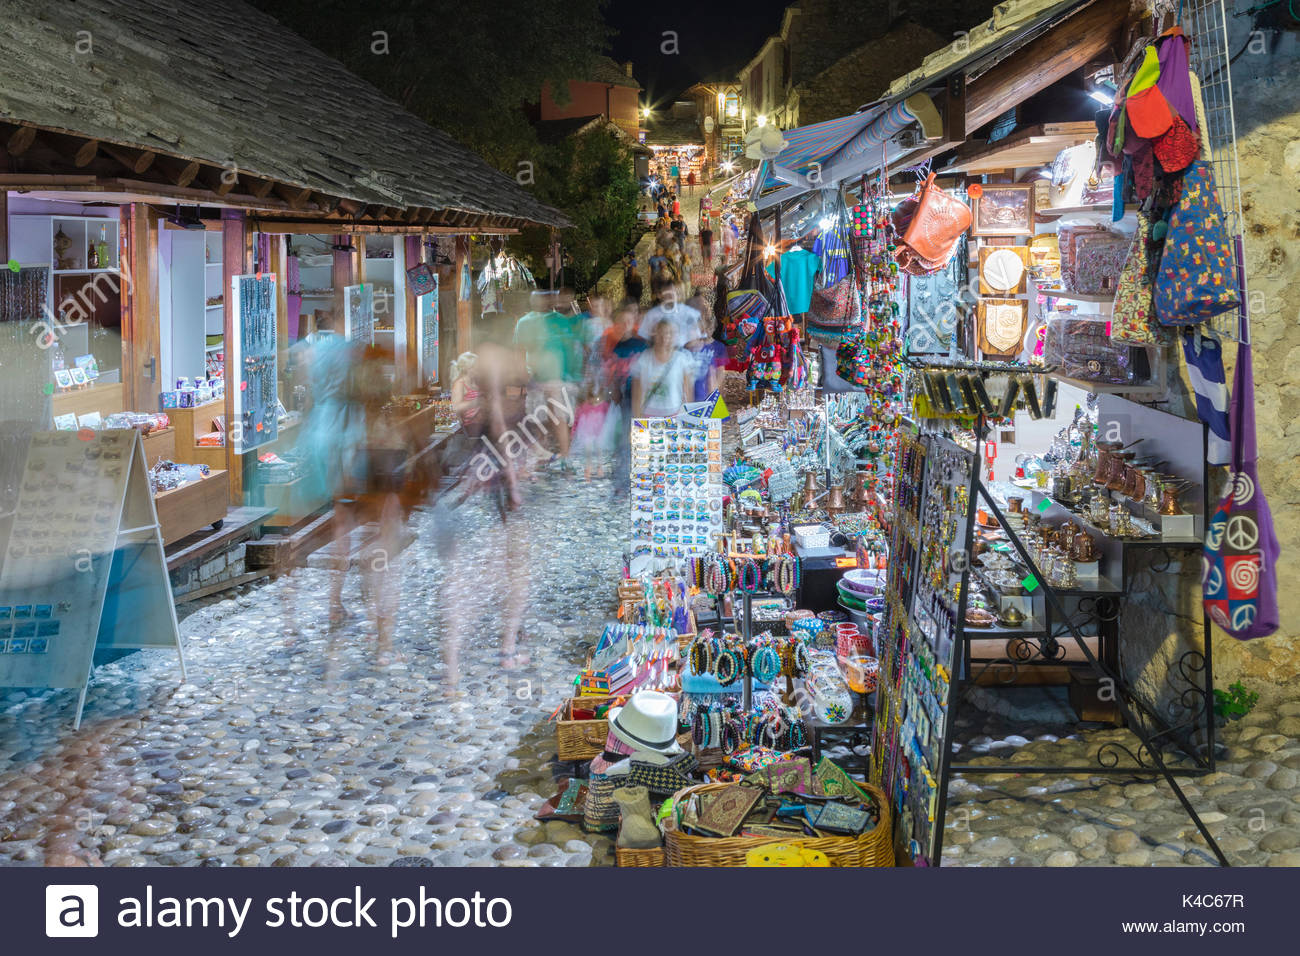 Souvenirs on sale in Old Town market, Mostar, Bosnia and Herzegovina - Stock Image